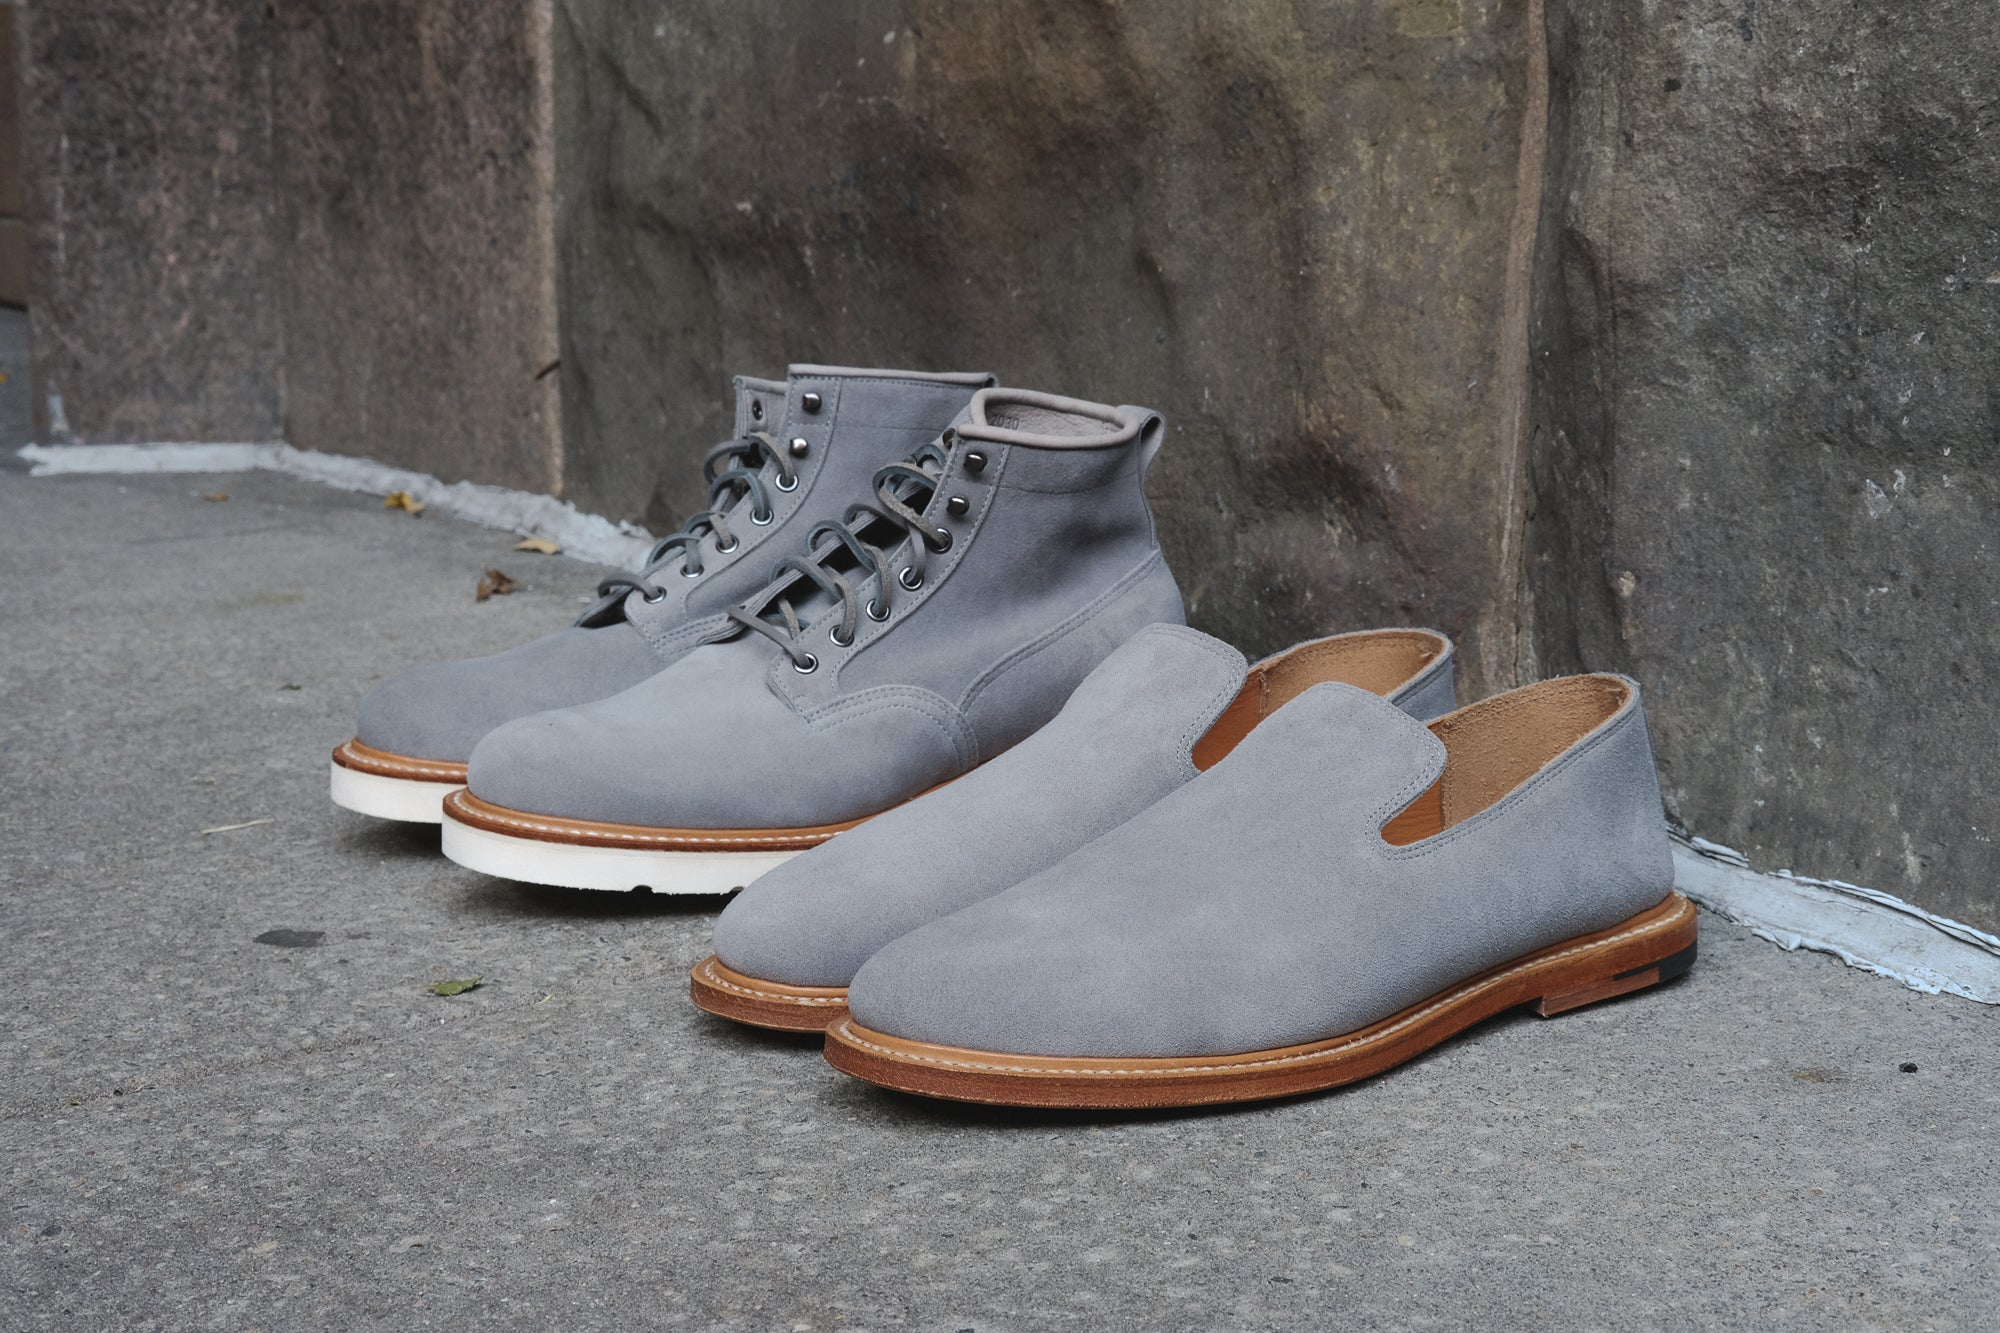 New Viberg Selections.